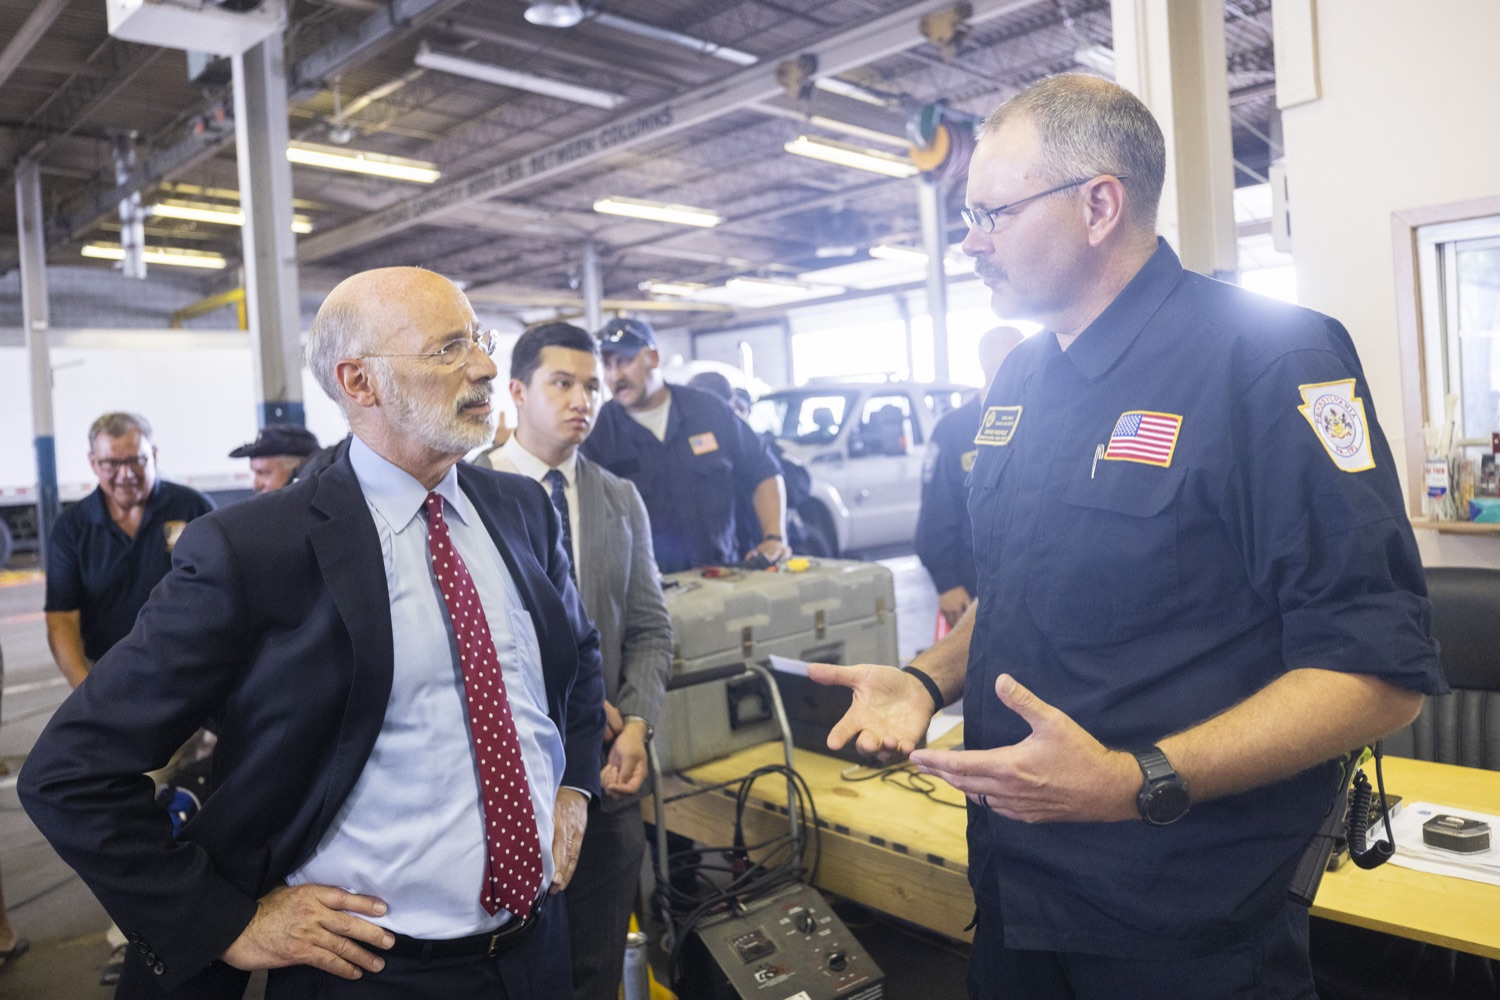 """<a href=""""https://filesource.wostreaming.net/commonwealthofpa/photo/18936_gov_taskforceone_dz_016.jpg"""" target=""""_blank"""">⇣Download Photo<br></a>Governor Tom Wolf speaking to PEMA Director Randy Padfield.  Governor Tom Wolf thanked members of Pennsylvania-Task Force 1 (PA- TF1), who returned today to Philadelphia after spending two weeks assisting with search and rescue efforts at the site of the recent deadly building collapse in Surfside, Florida.  Philadelphia, Pa.  July 16, 2021"""